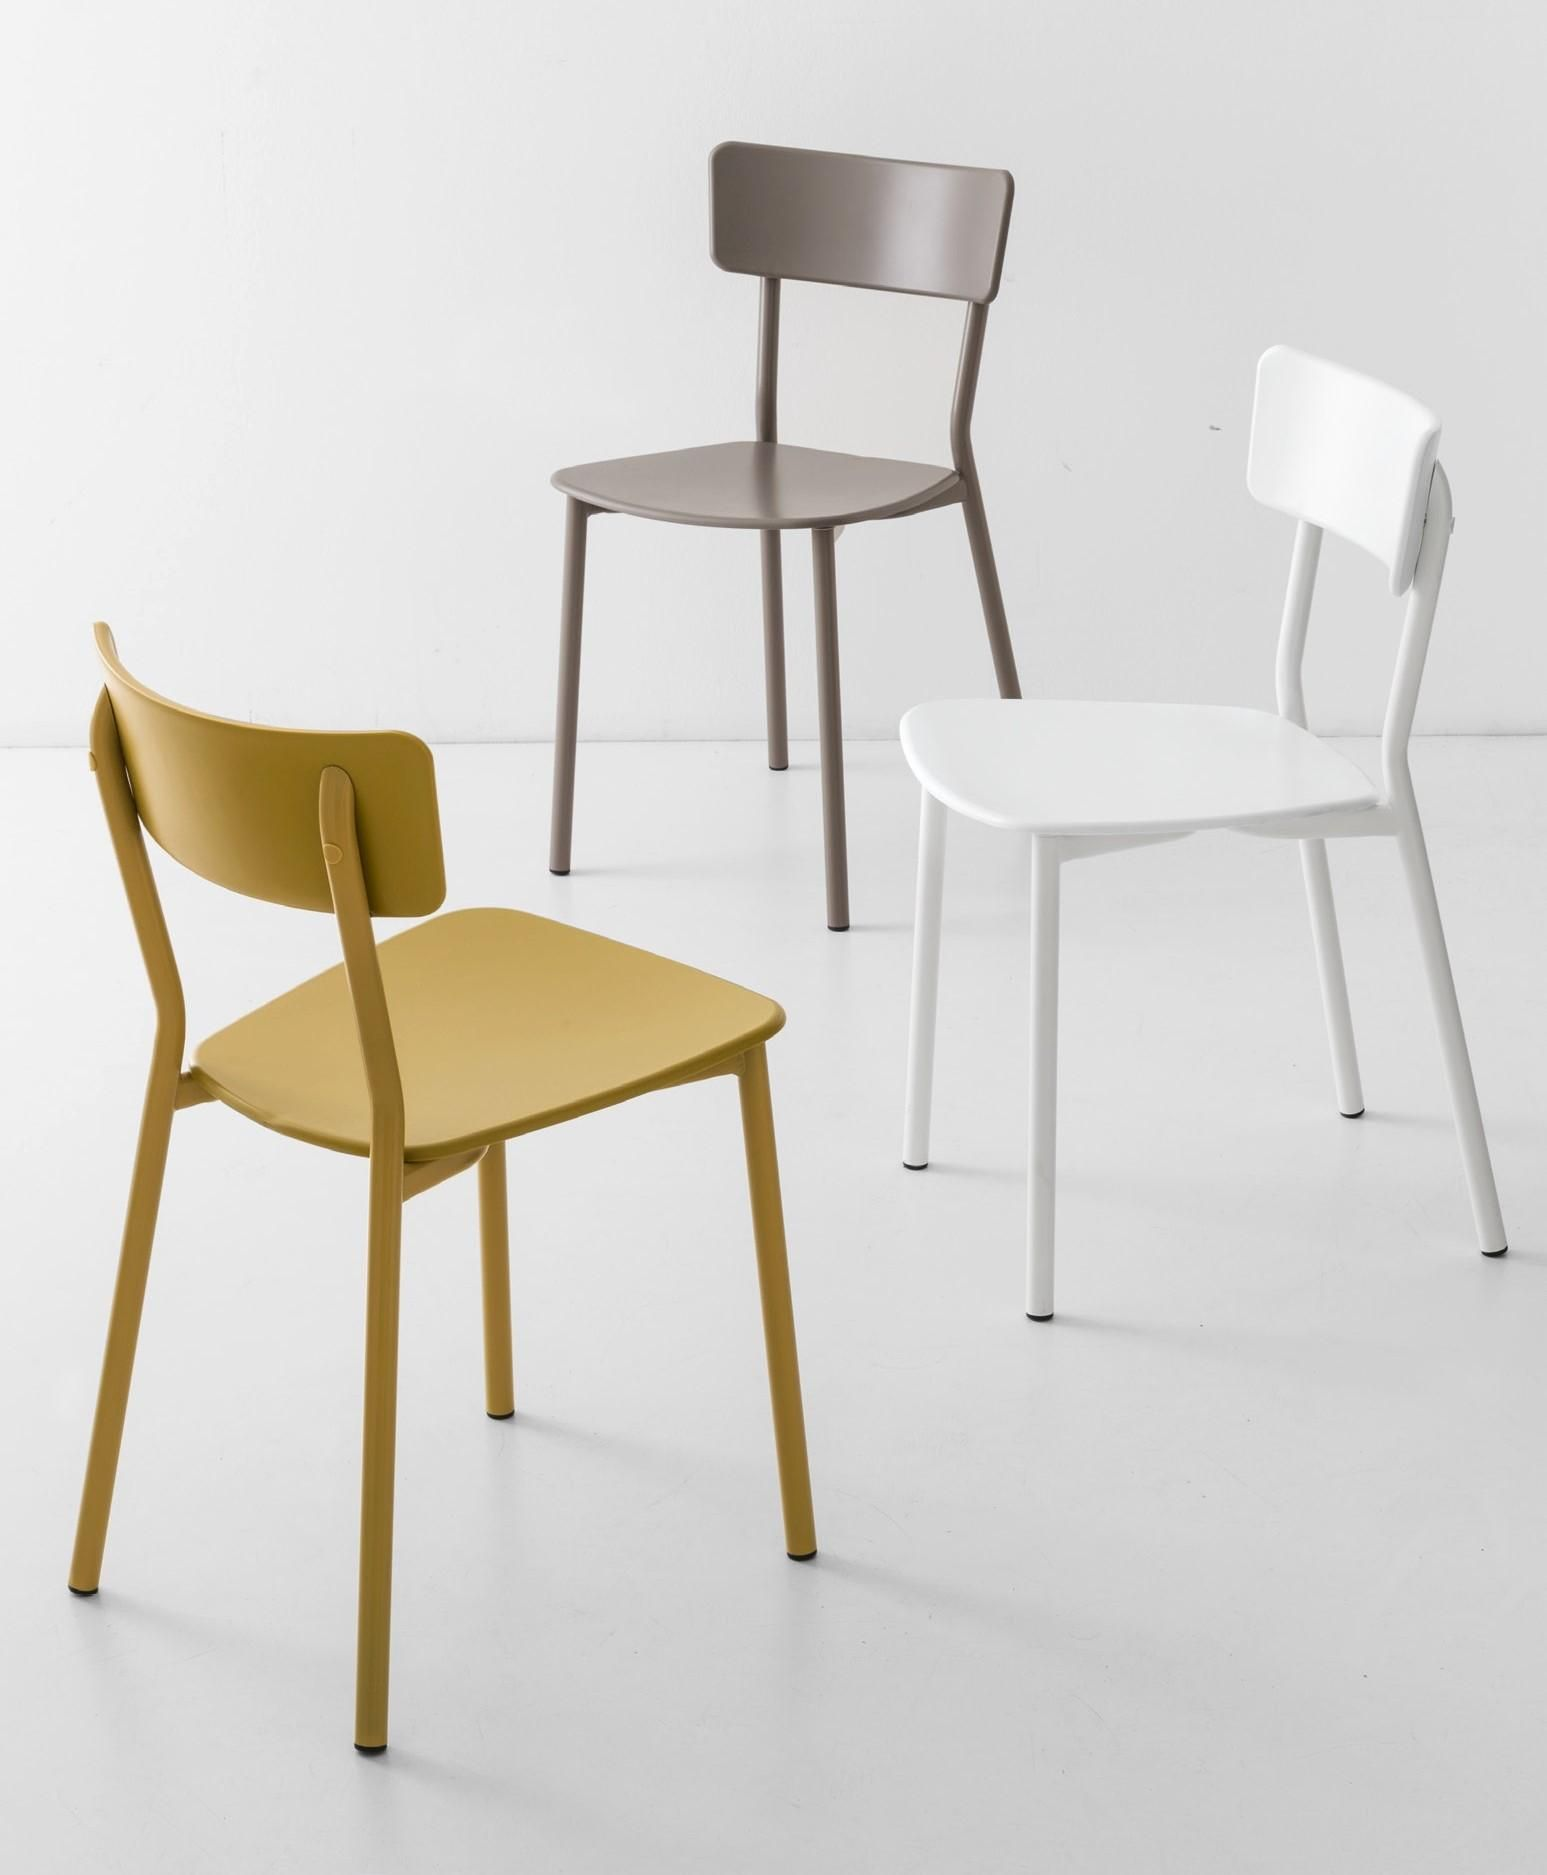 Sedia JELLY METAL con gambe Metallo by Connubia Calligaris